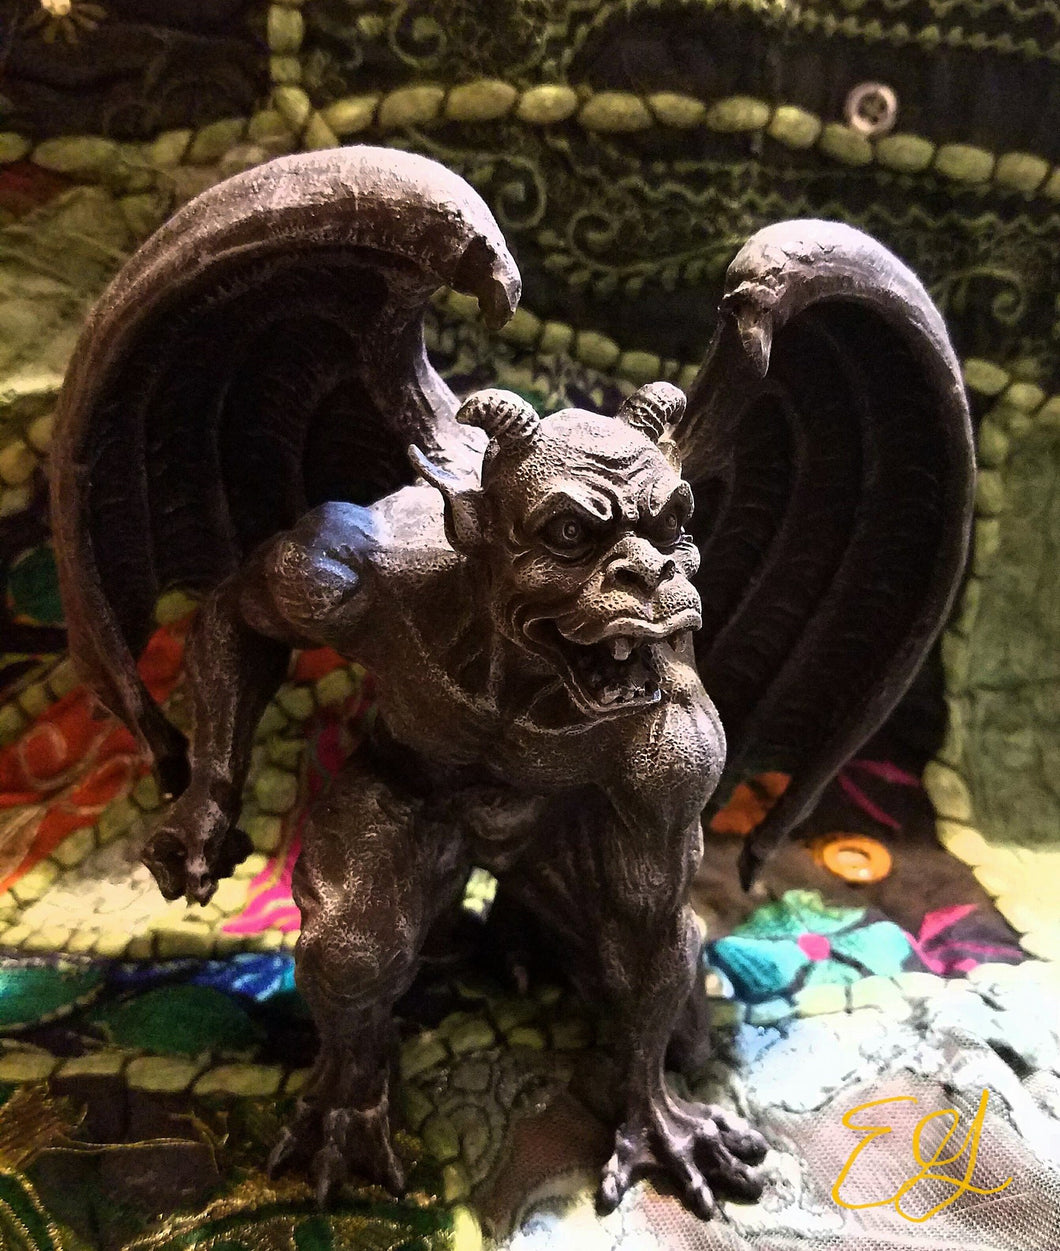 The Guardian Gargoyle Statue